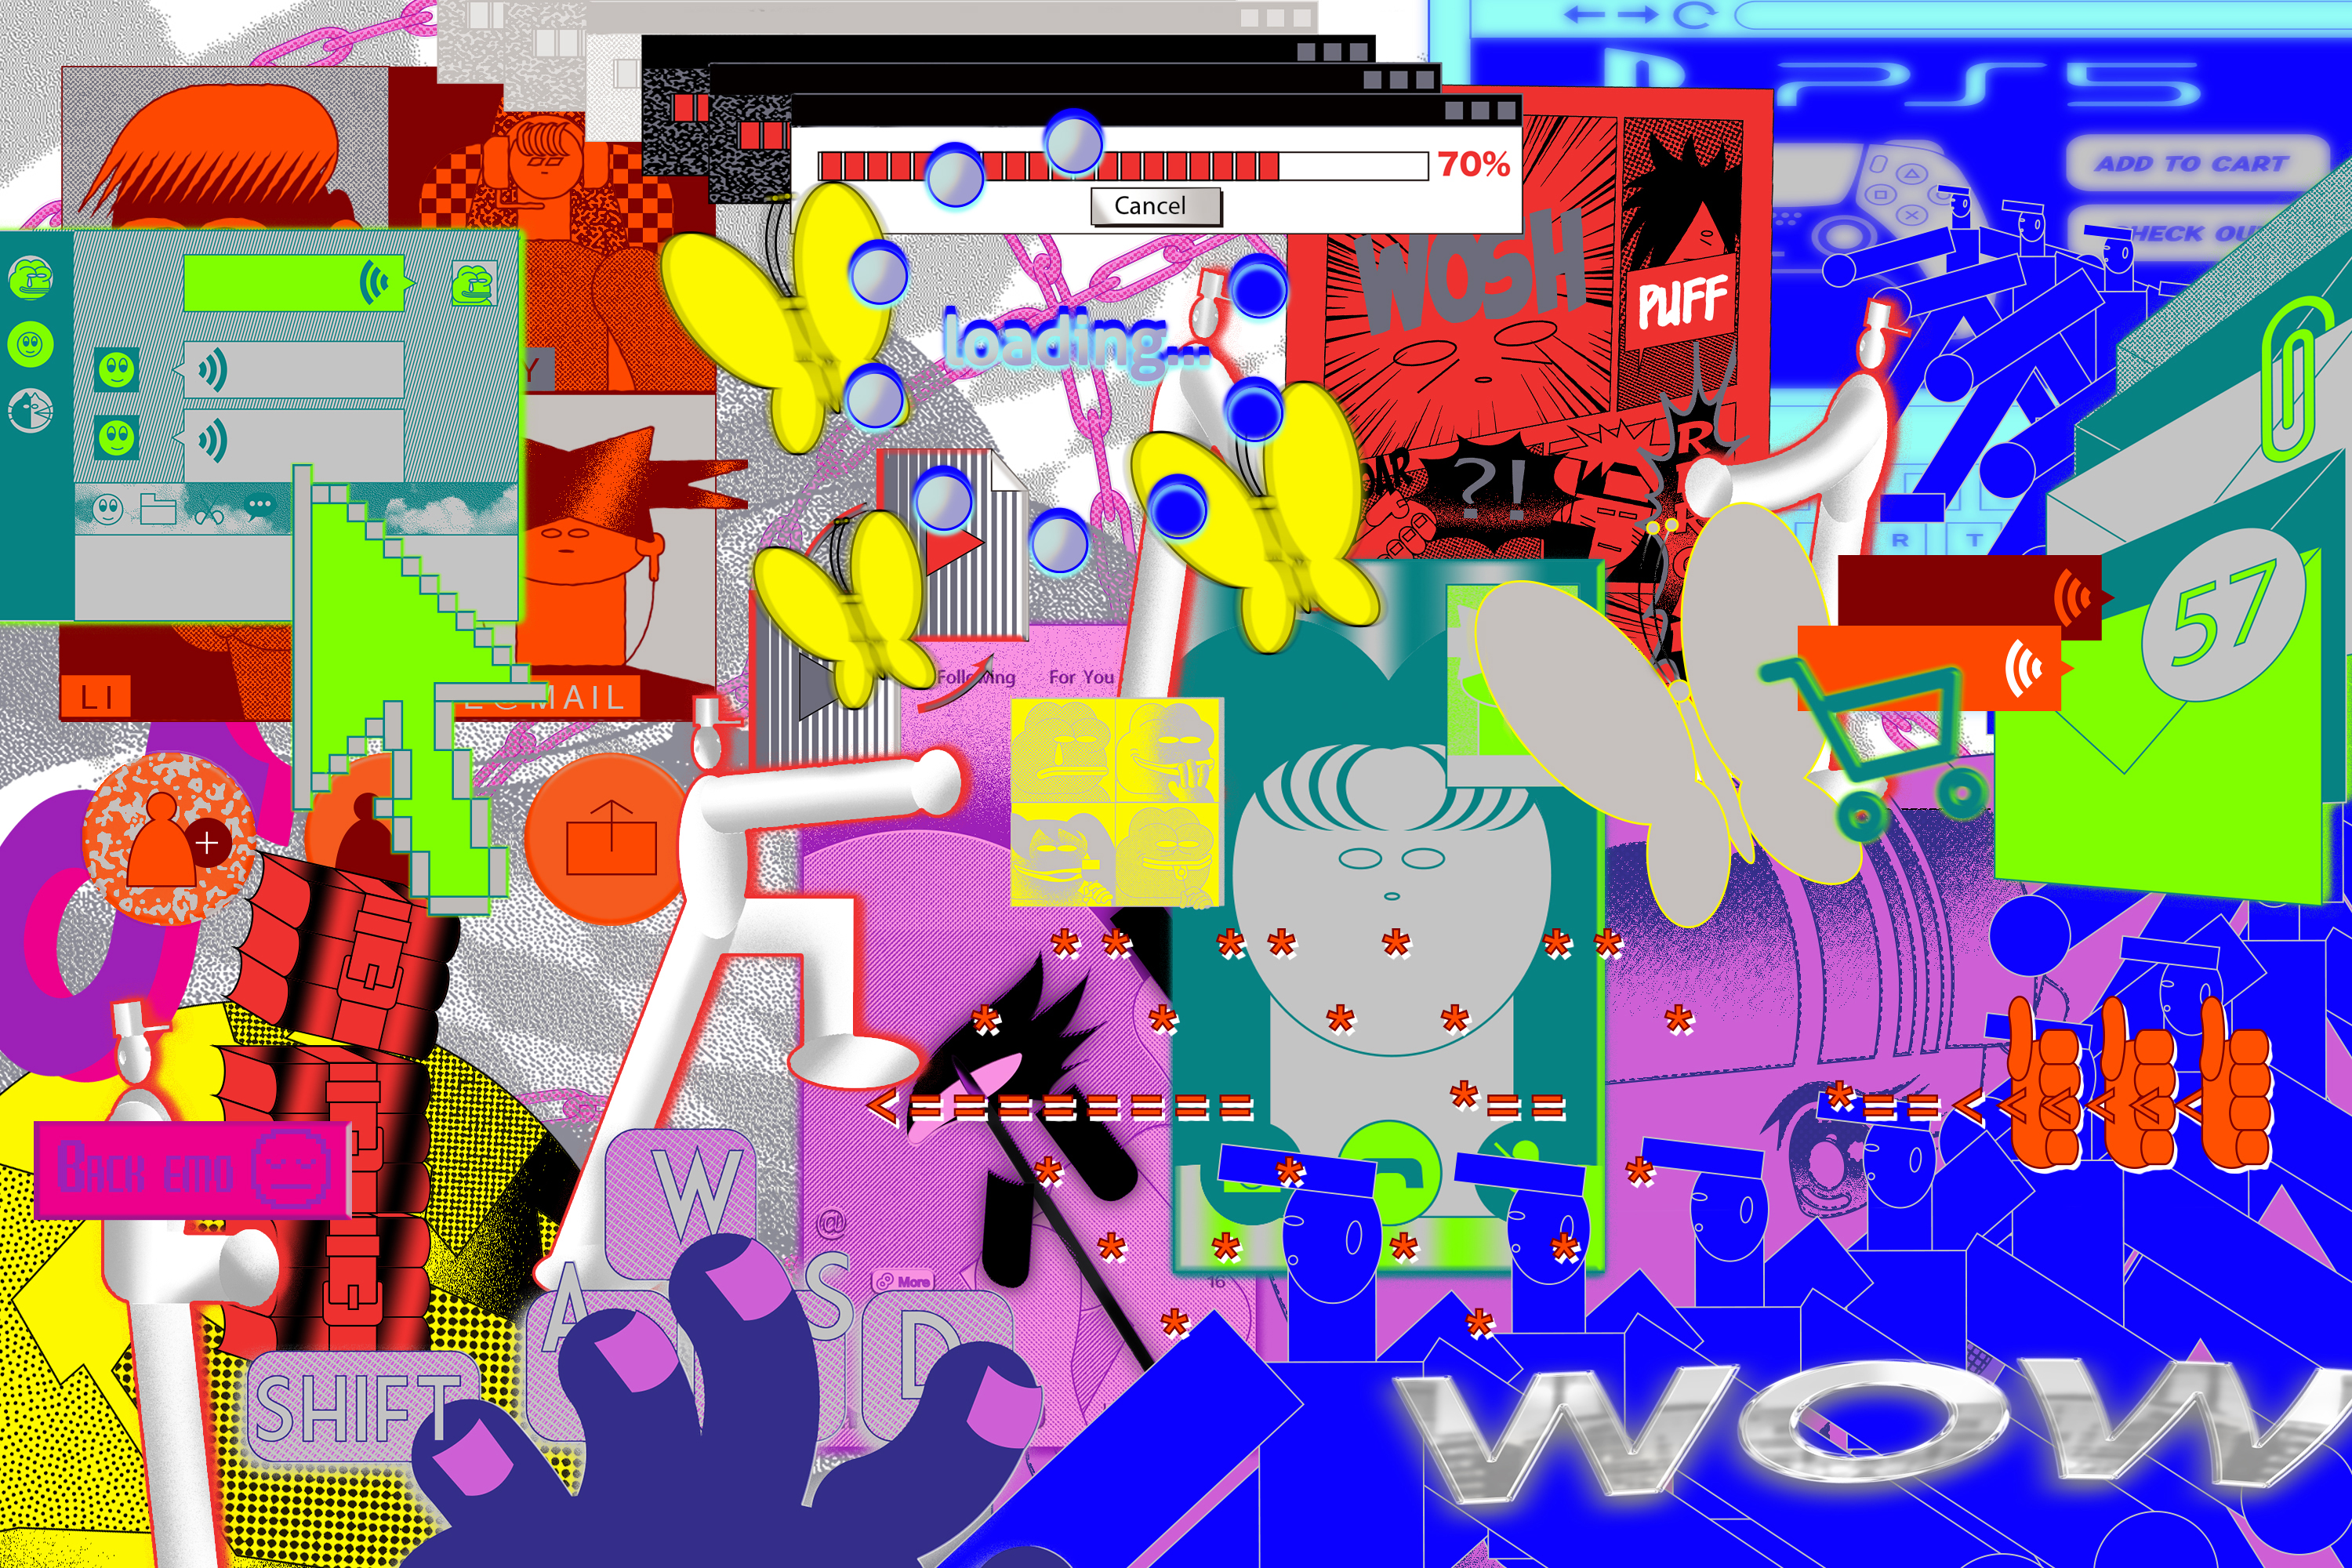 Illustration featuring different elements from the internet in bright, fluorescent colors